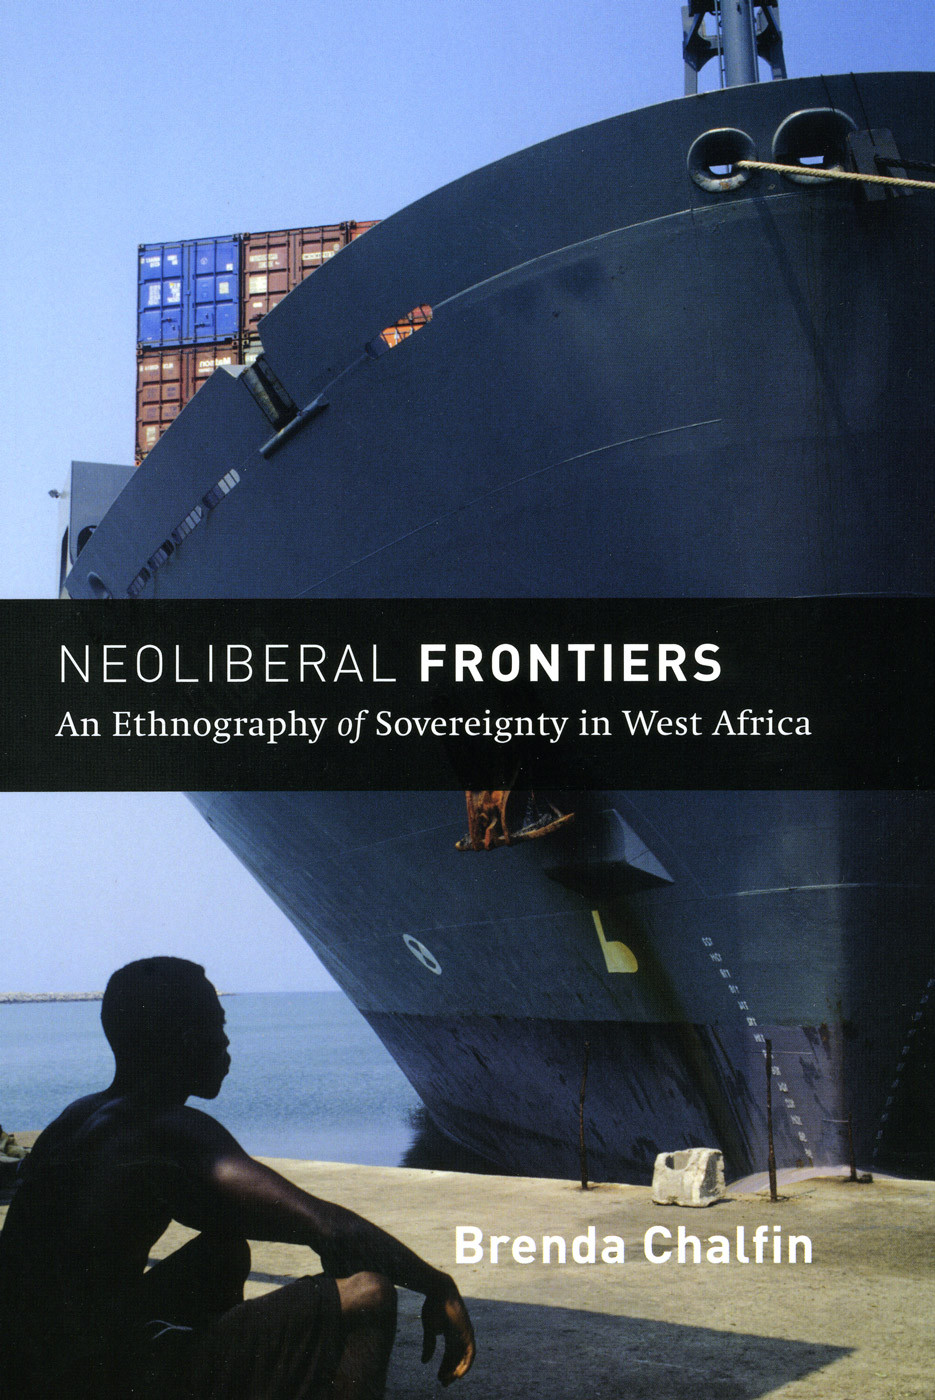 cover of Neoliberal Frontiers by Brenda Chalfin